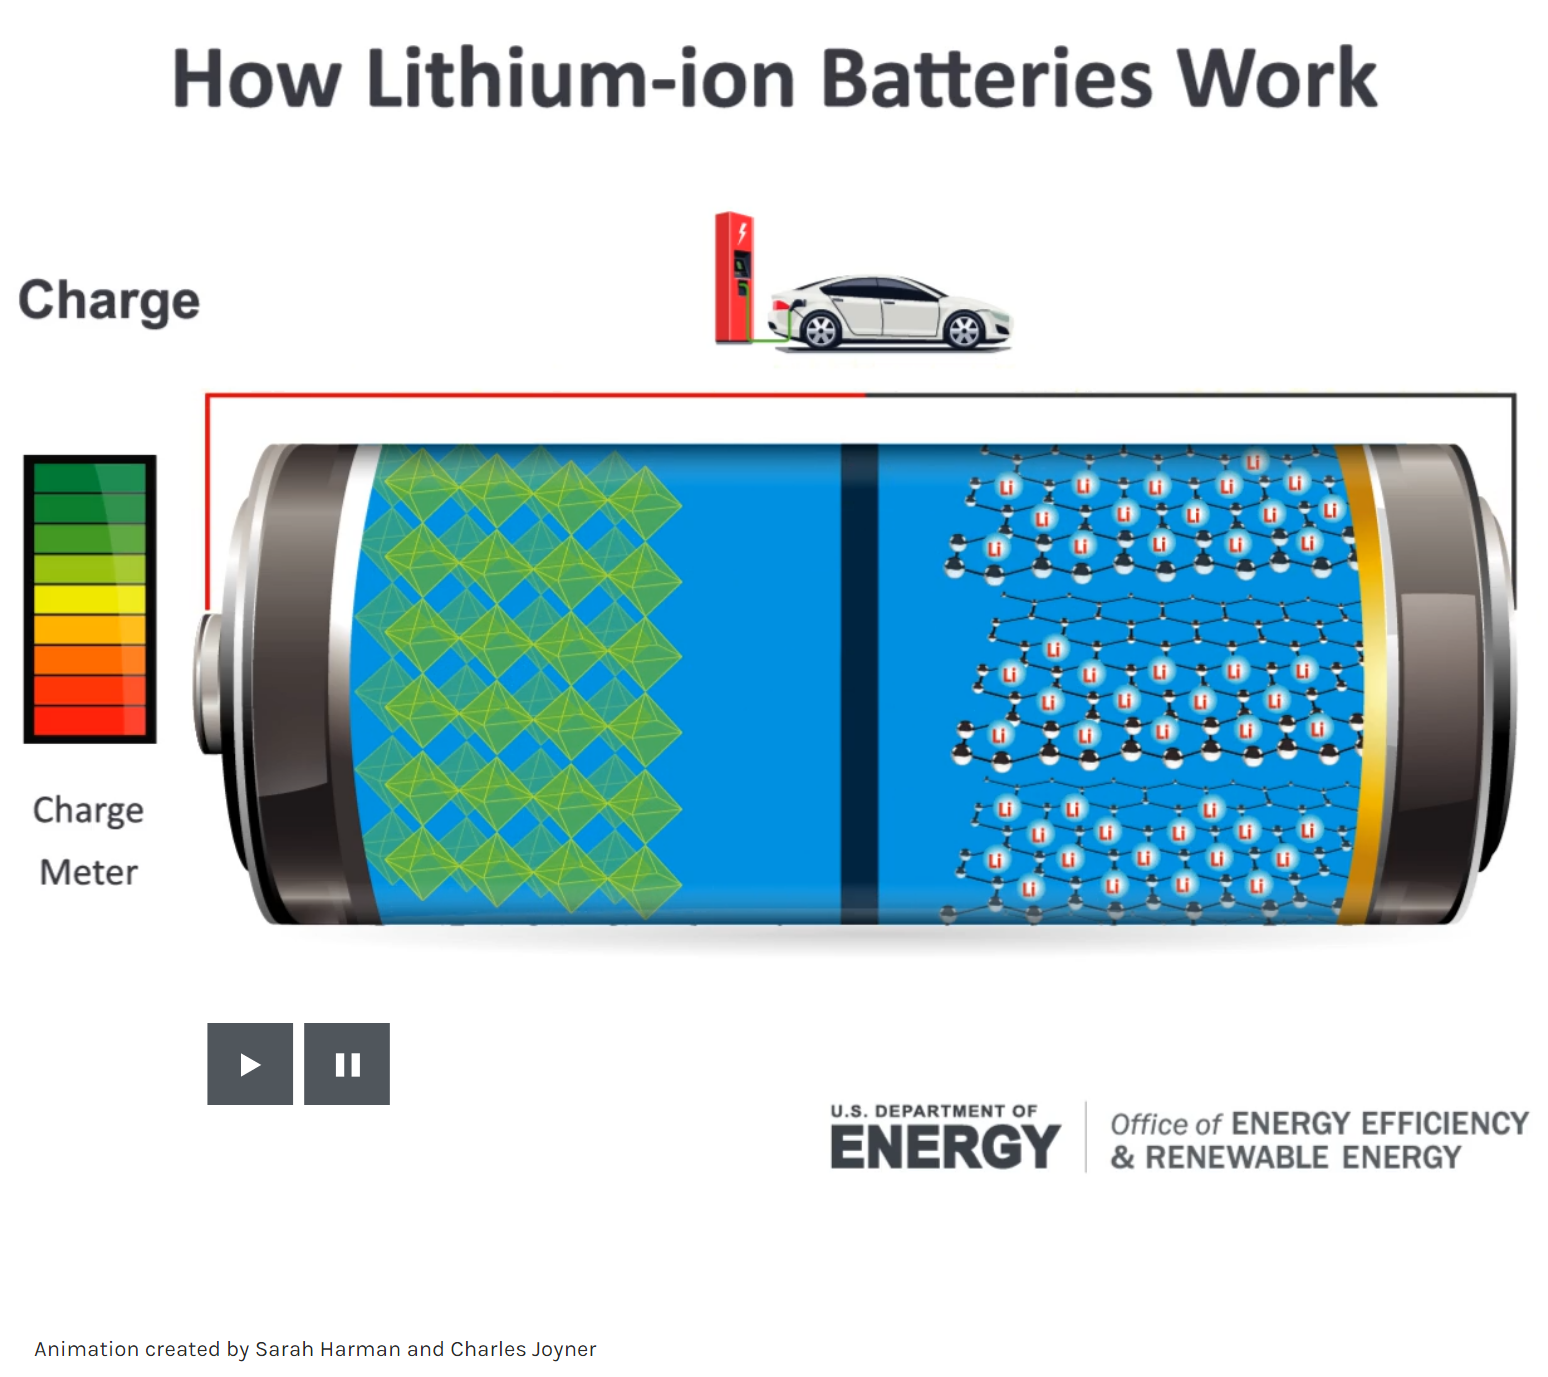 How Lithium-ion Batteries Work